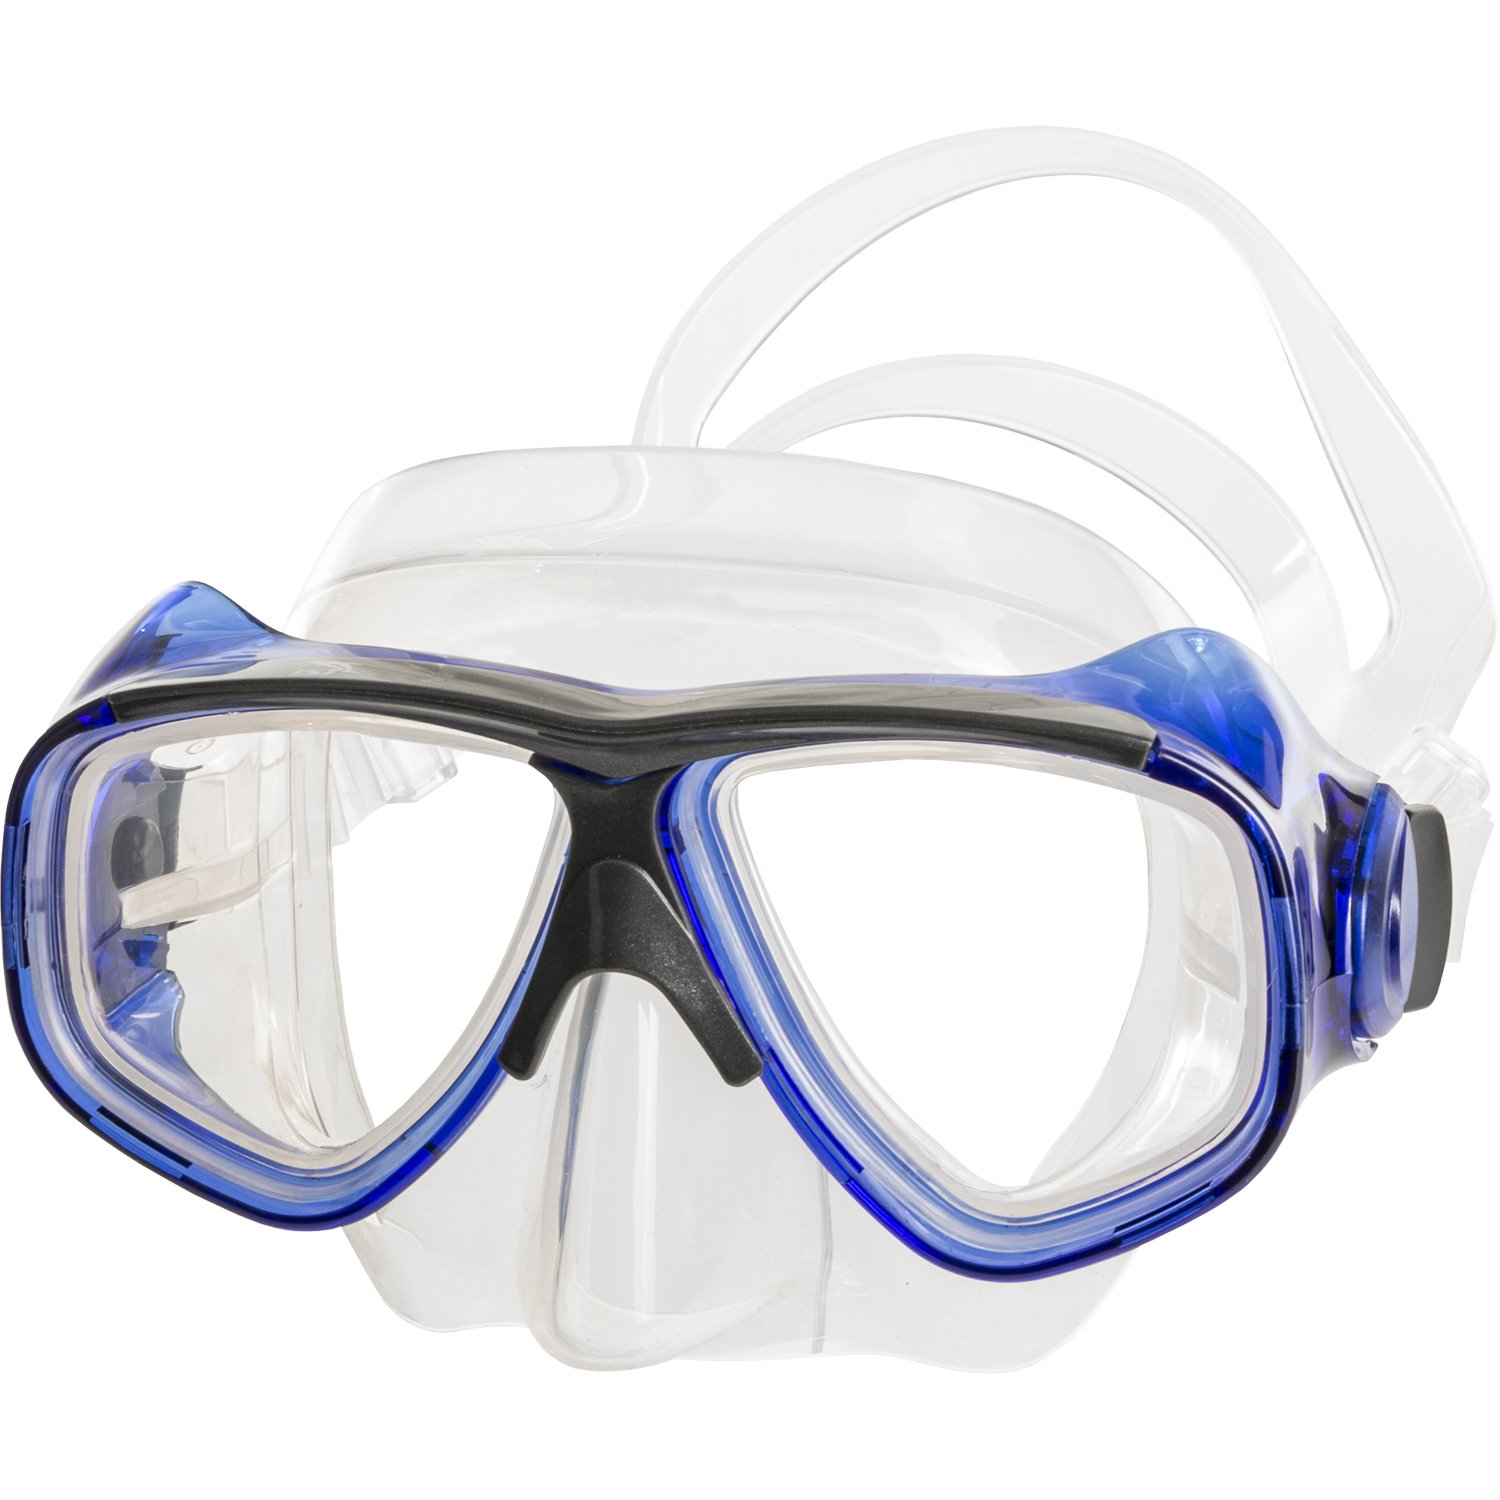 IST RX Prescription Scuba Diving Mask (Clear Blue, Nearsight -1.0) by IST